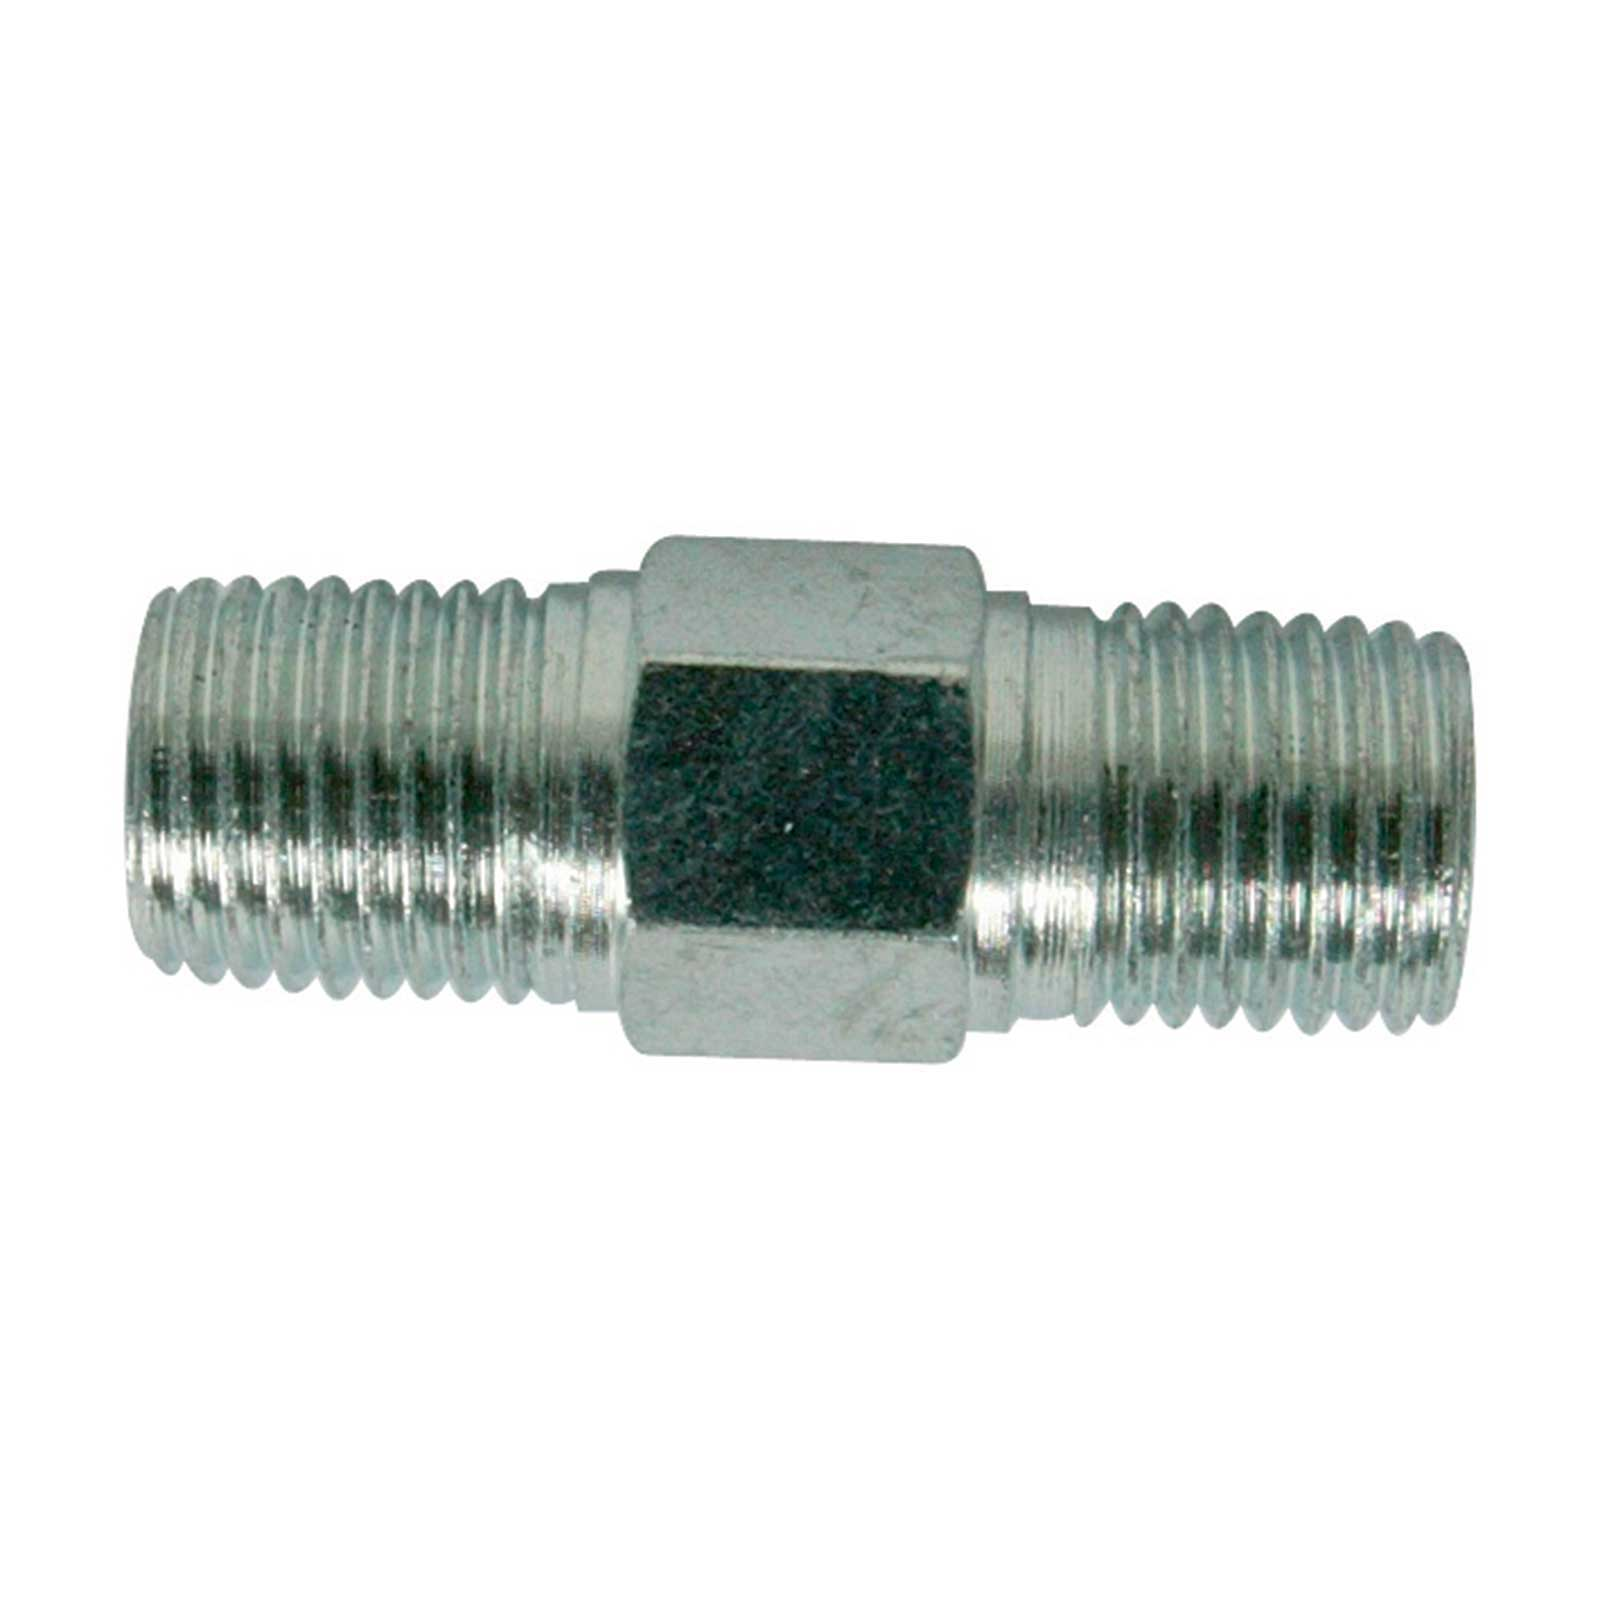 Silverline 868632 Air Tools Male To Male Equal Union Connector Thumbnail 2